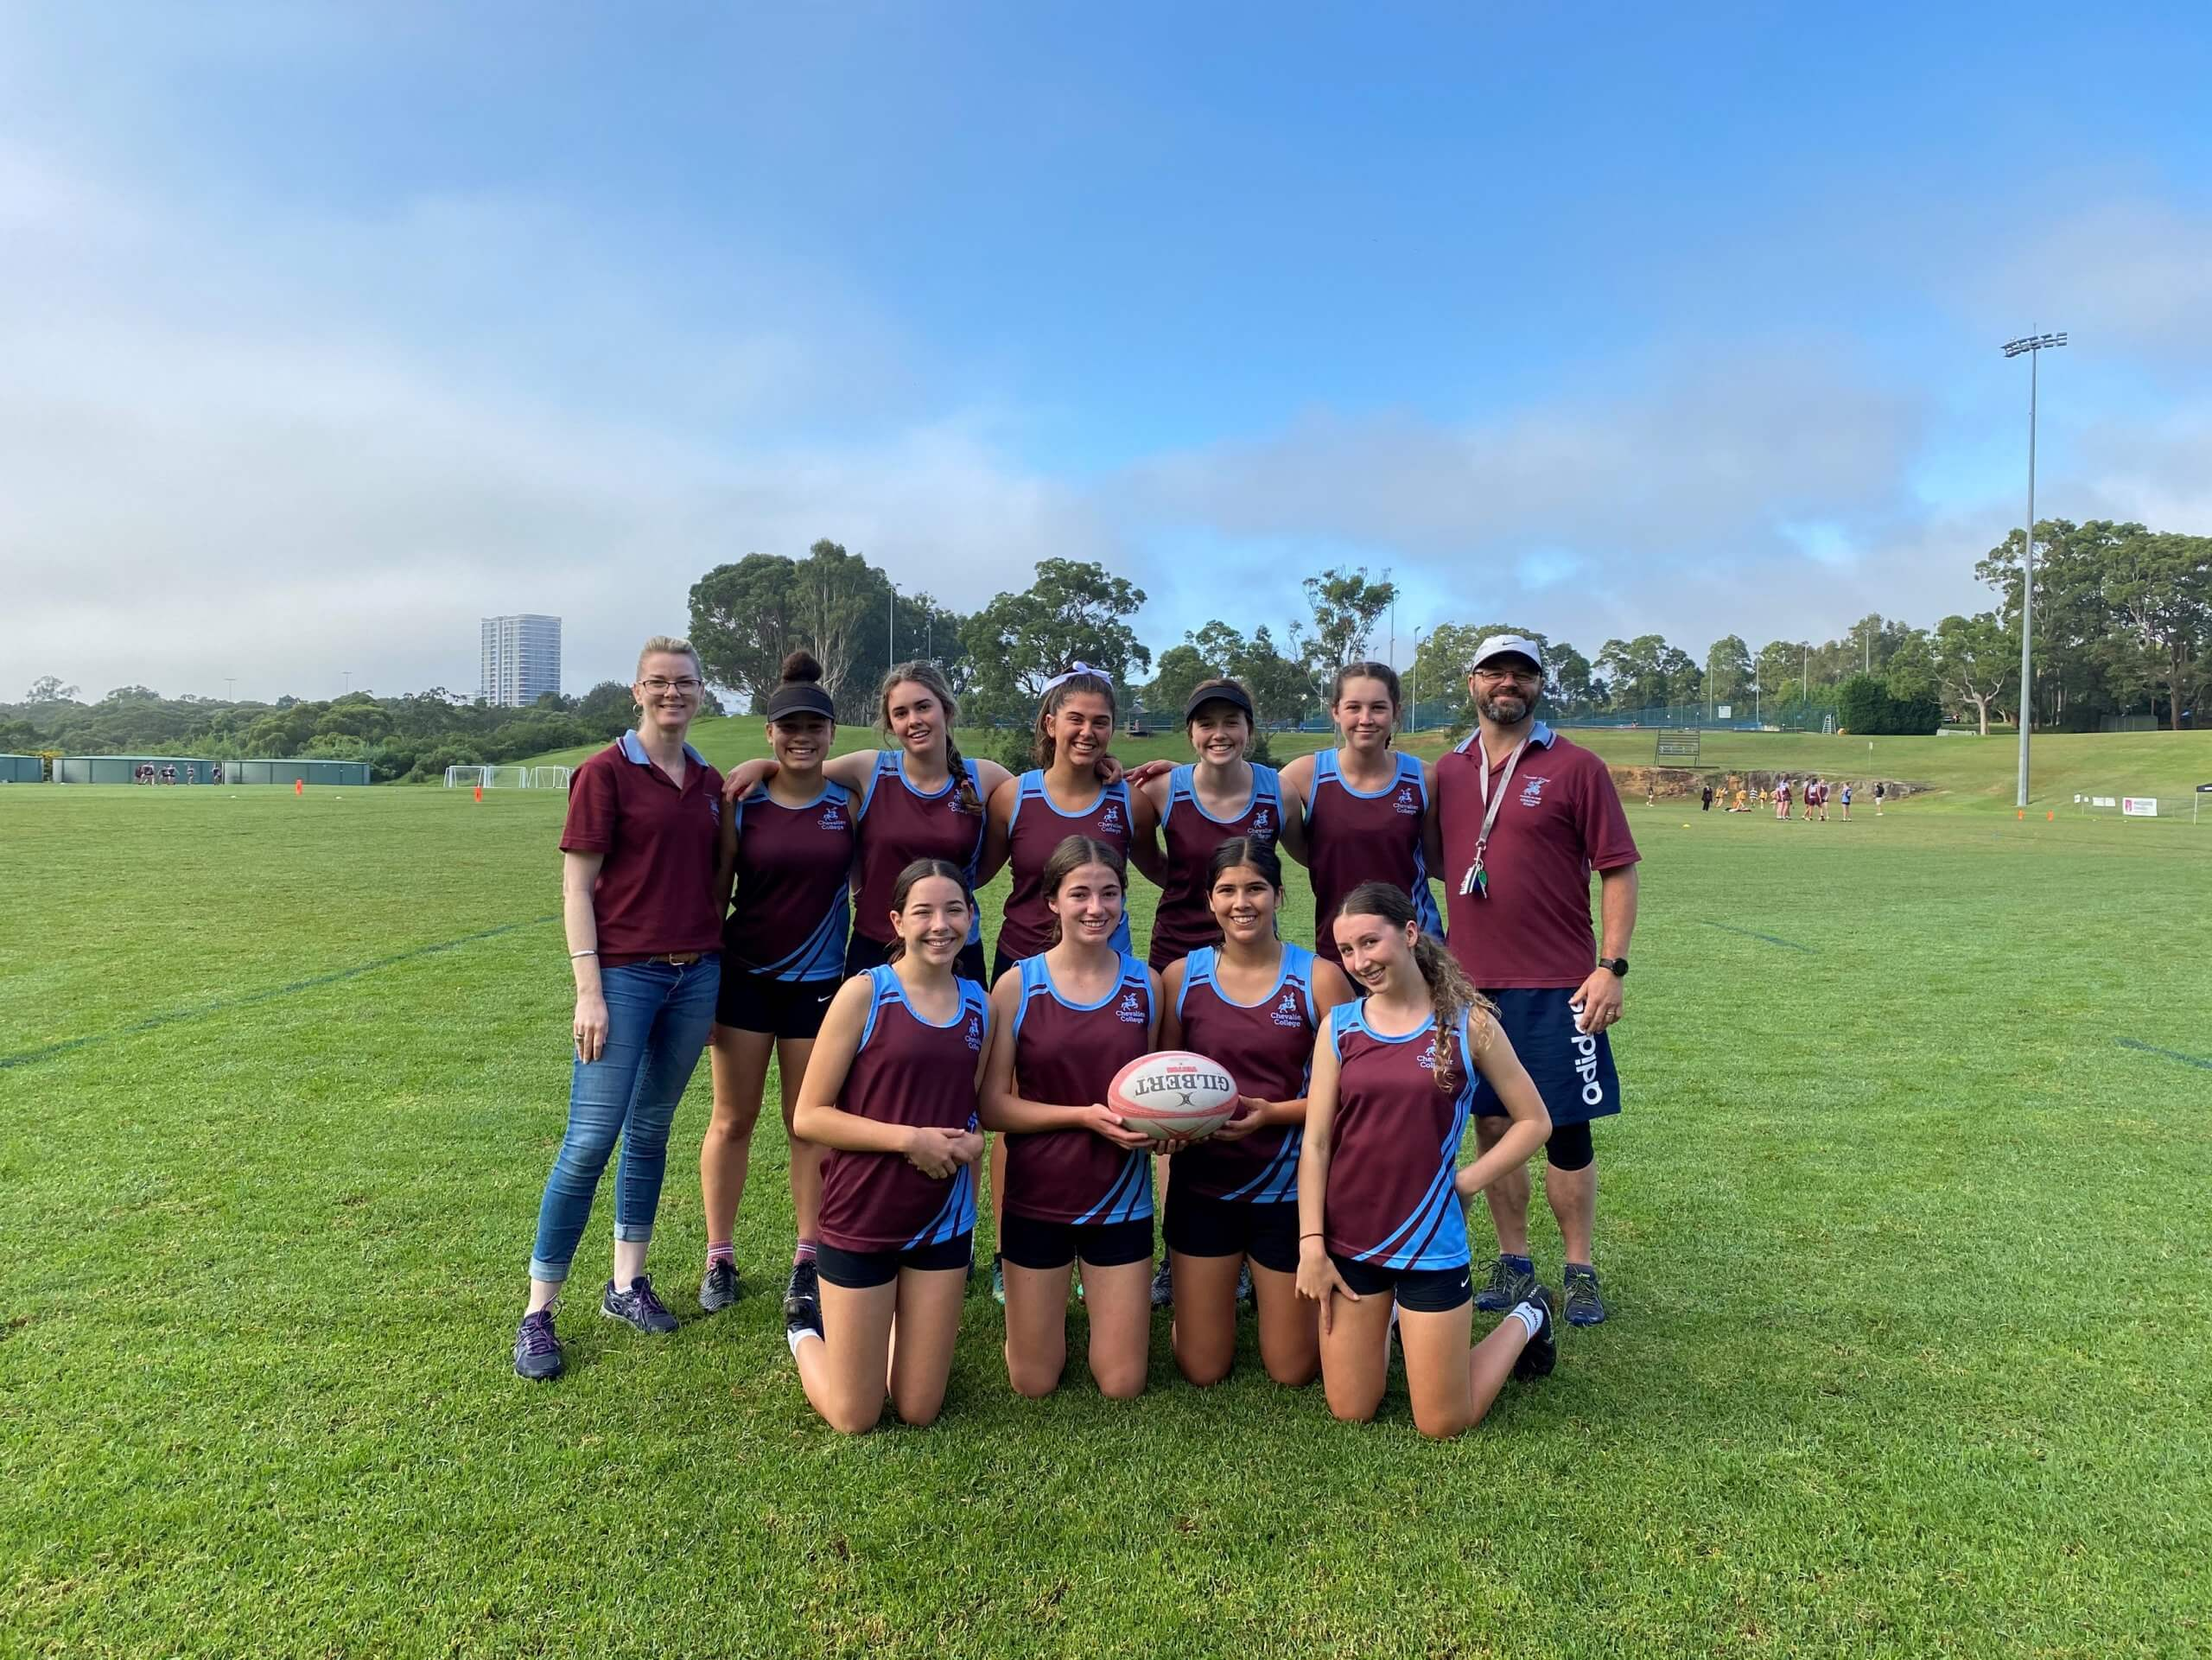 Chev 4 Touch Football Girls enjoyed a 5-0 win over Barker in the 2021 ISA Summer Finals